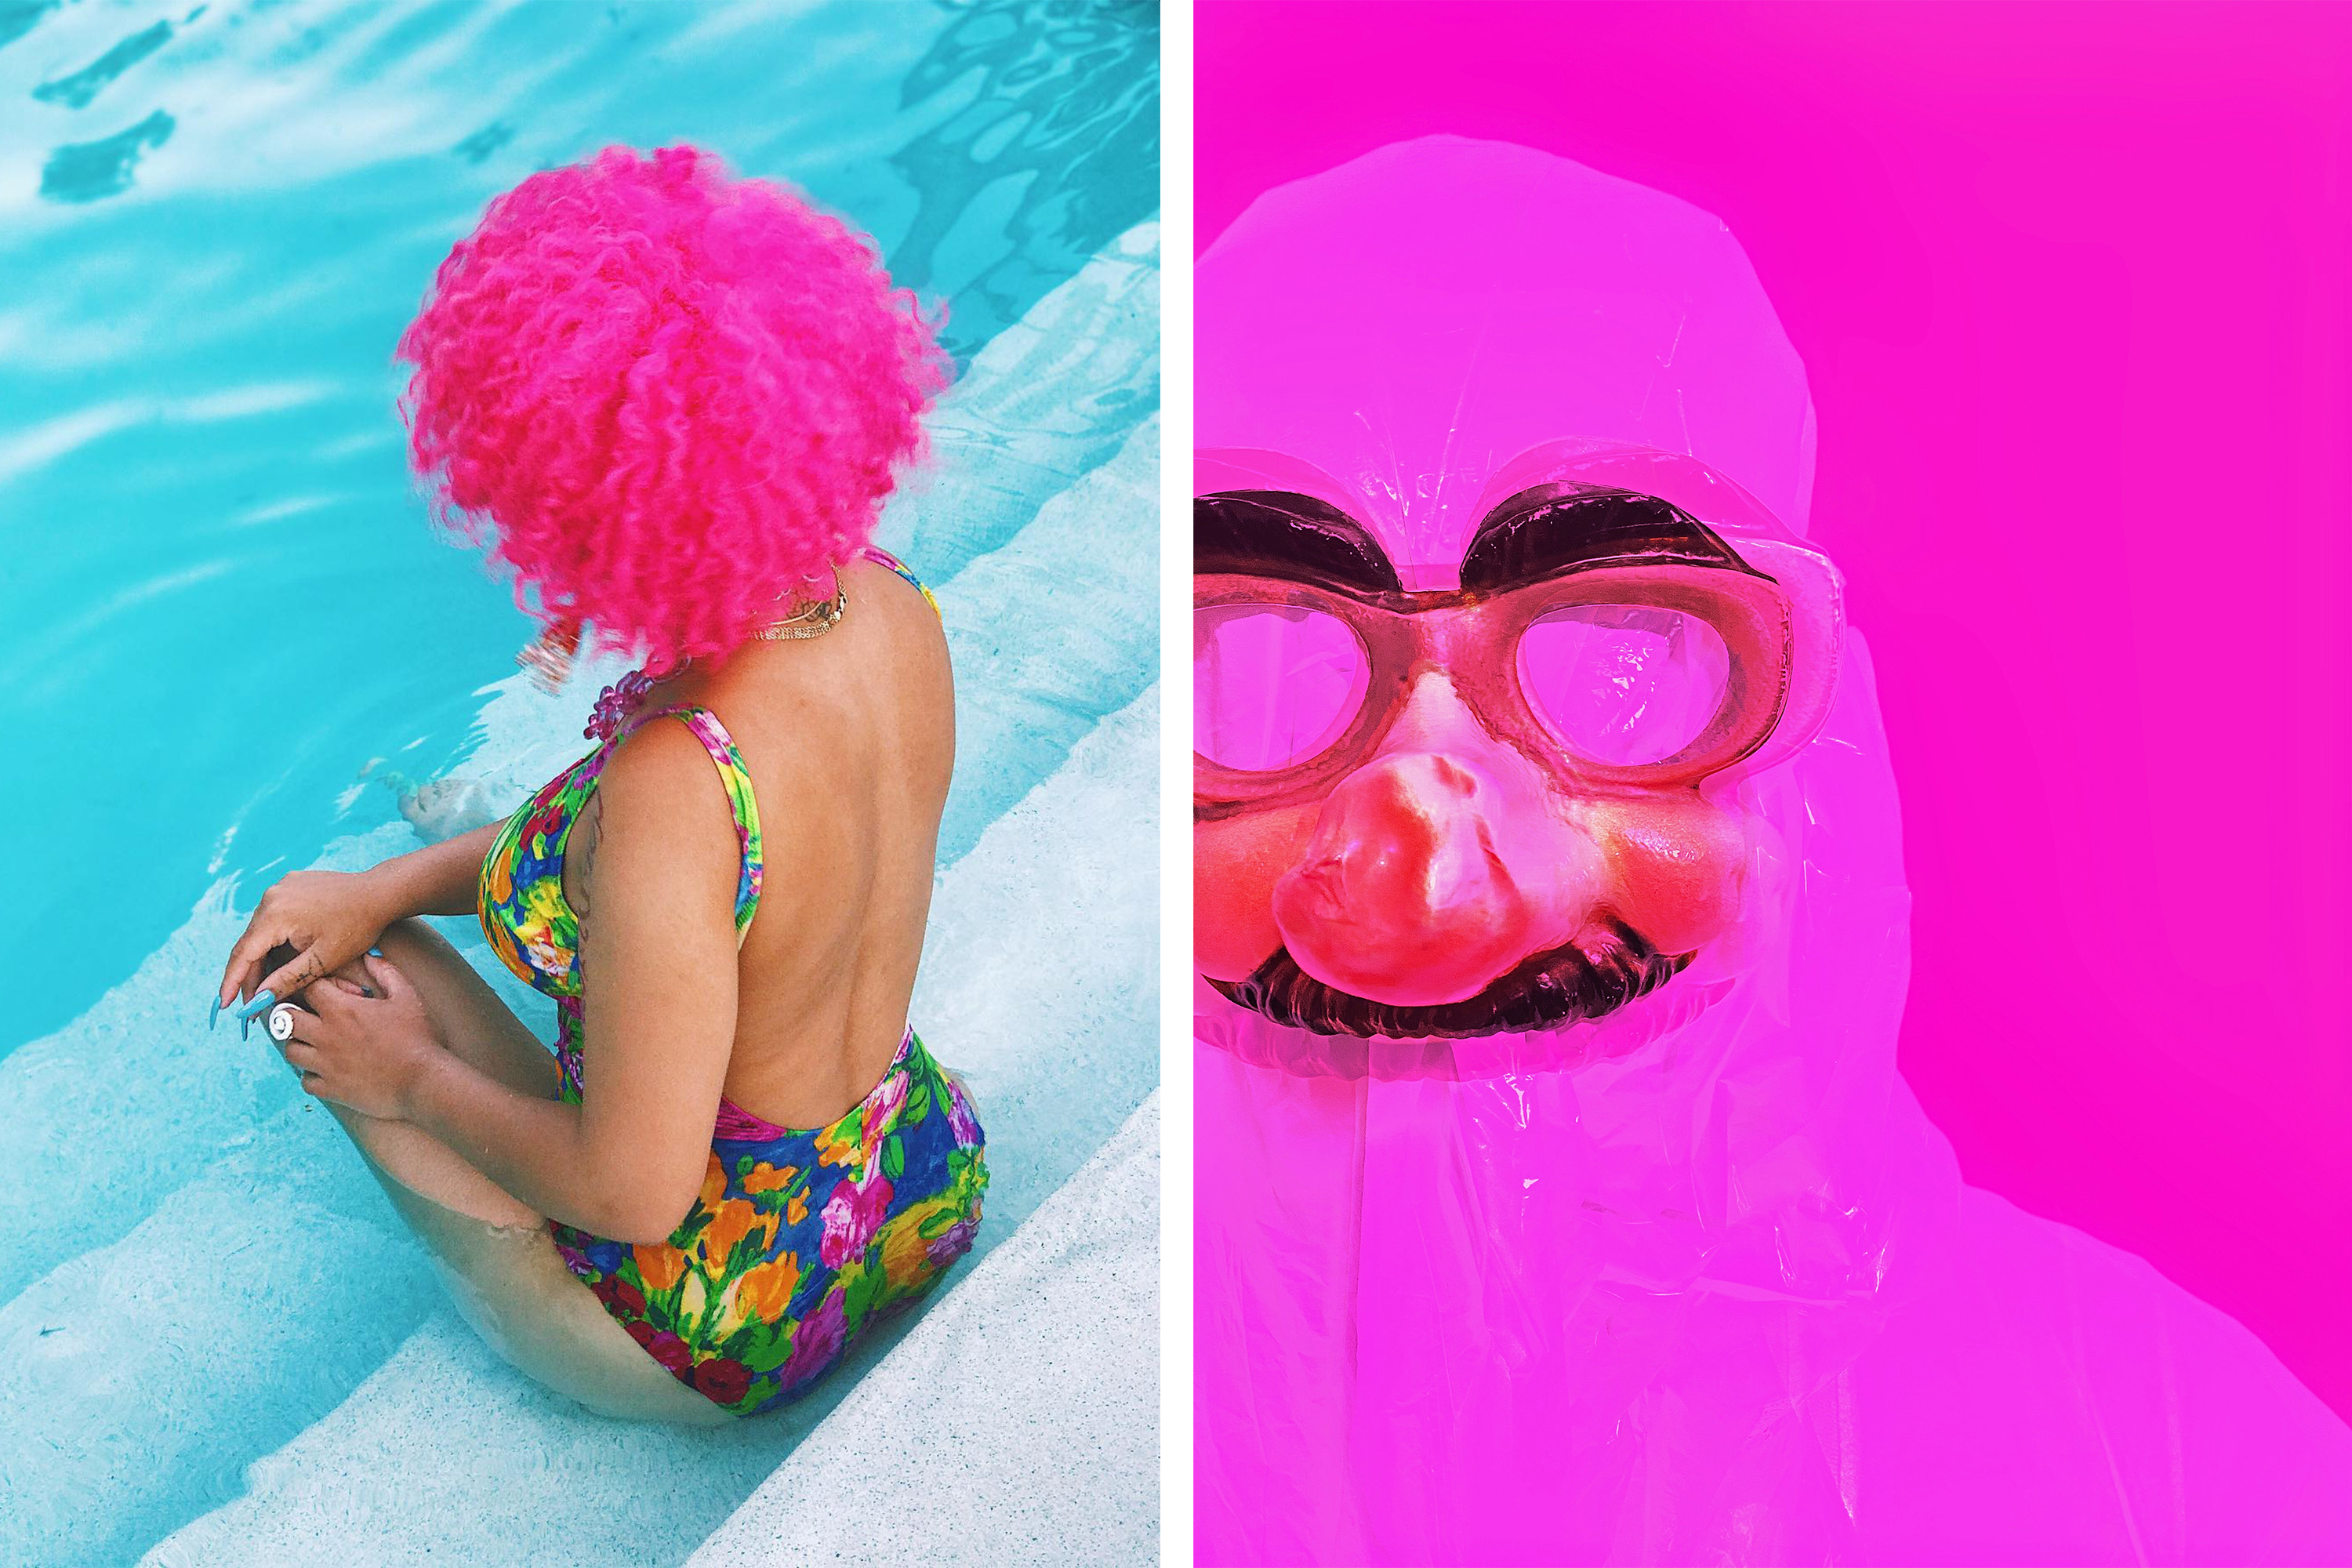 Two side-by-side images show a woman seated in a pool with a floral bathing suit and a wig, and a person in full-body plastic wrap, wearing glasses and a fake mustache